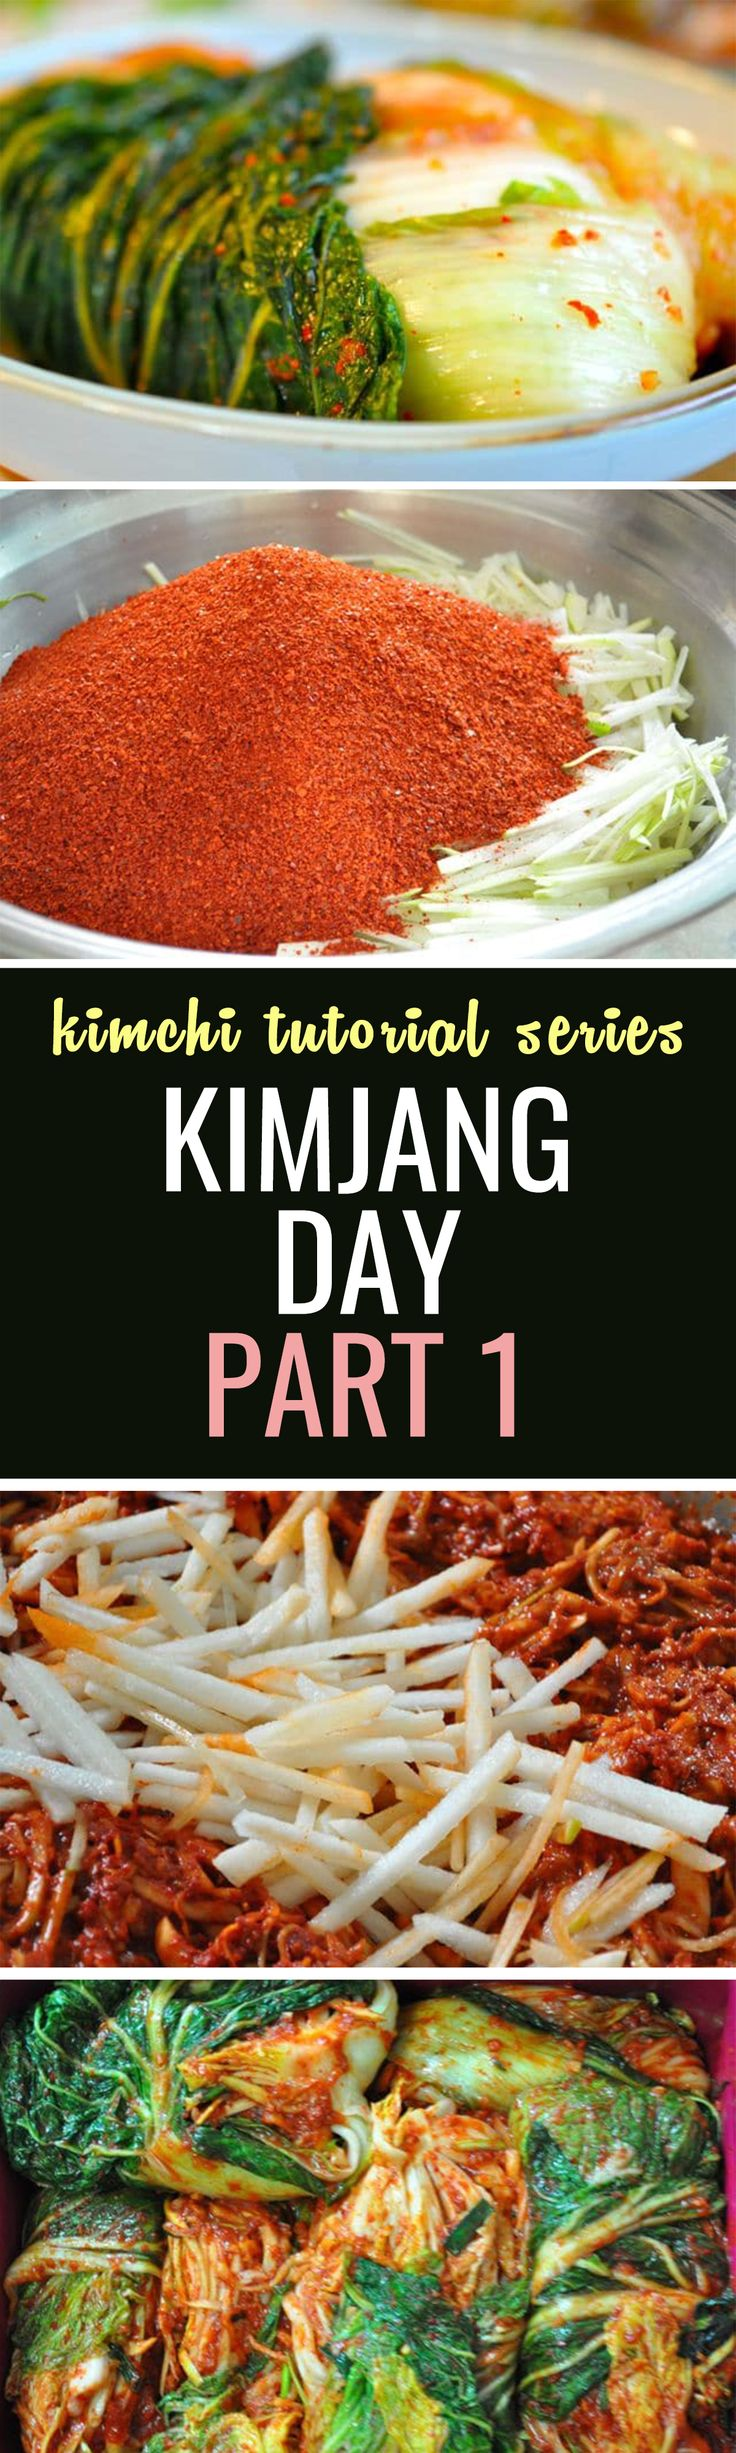 Here is an introduction to kimjang day, the day when you prepare kimchi for the family :)